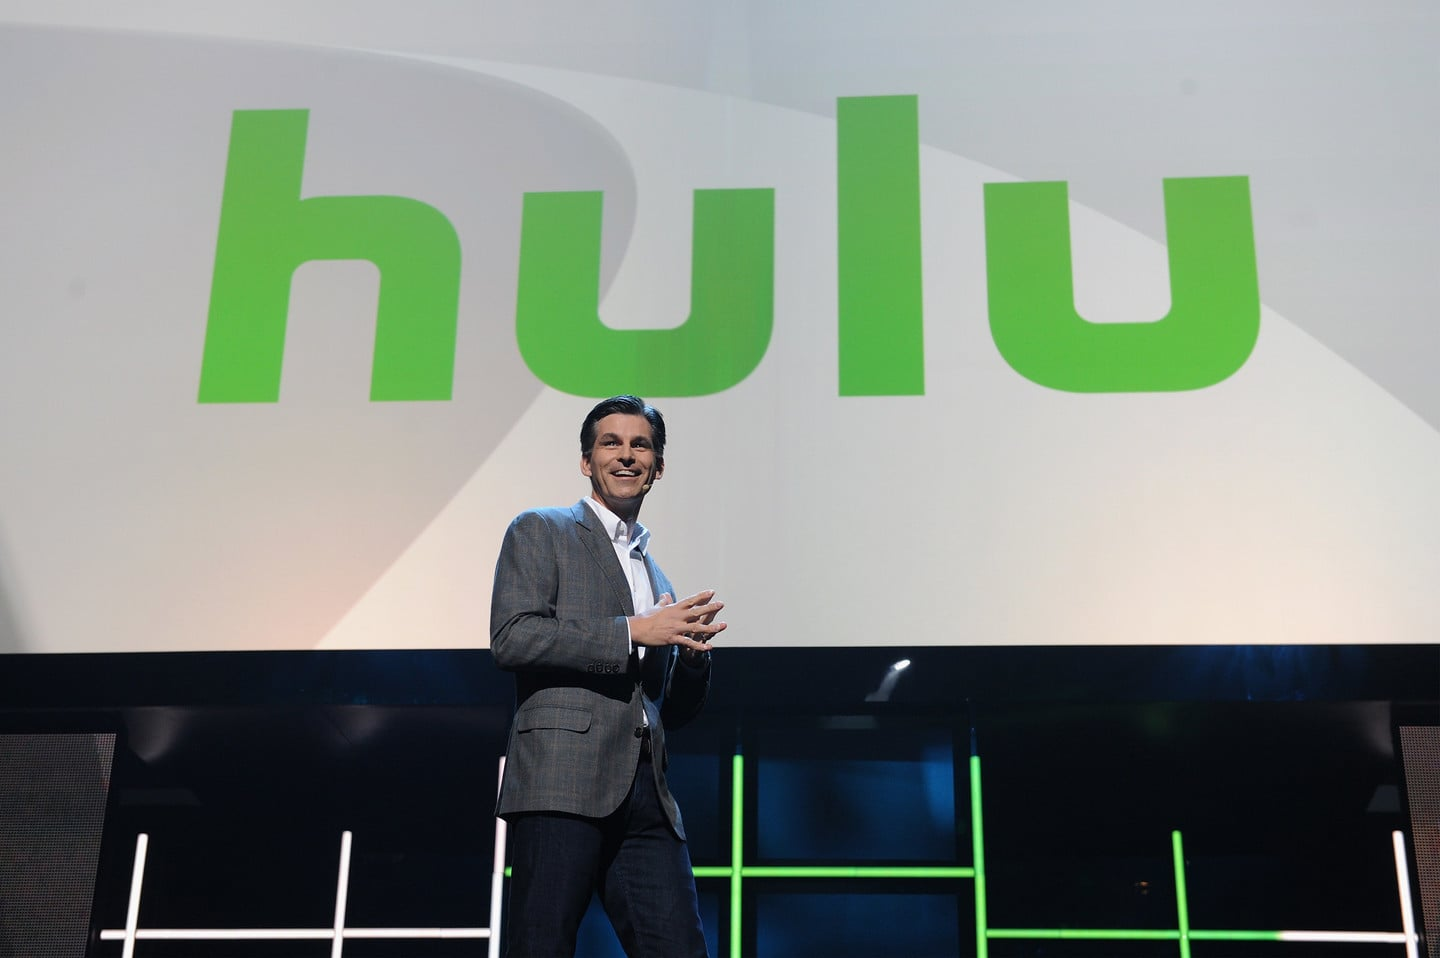 Hulu Live Streaming TV Service